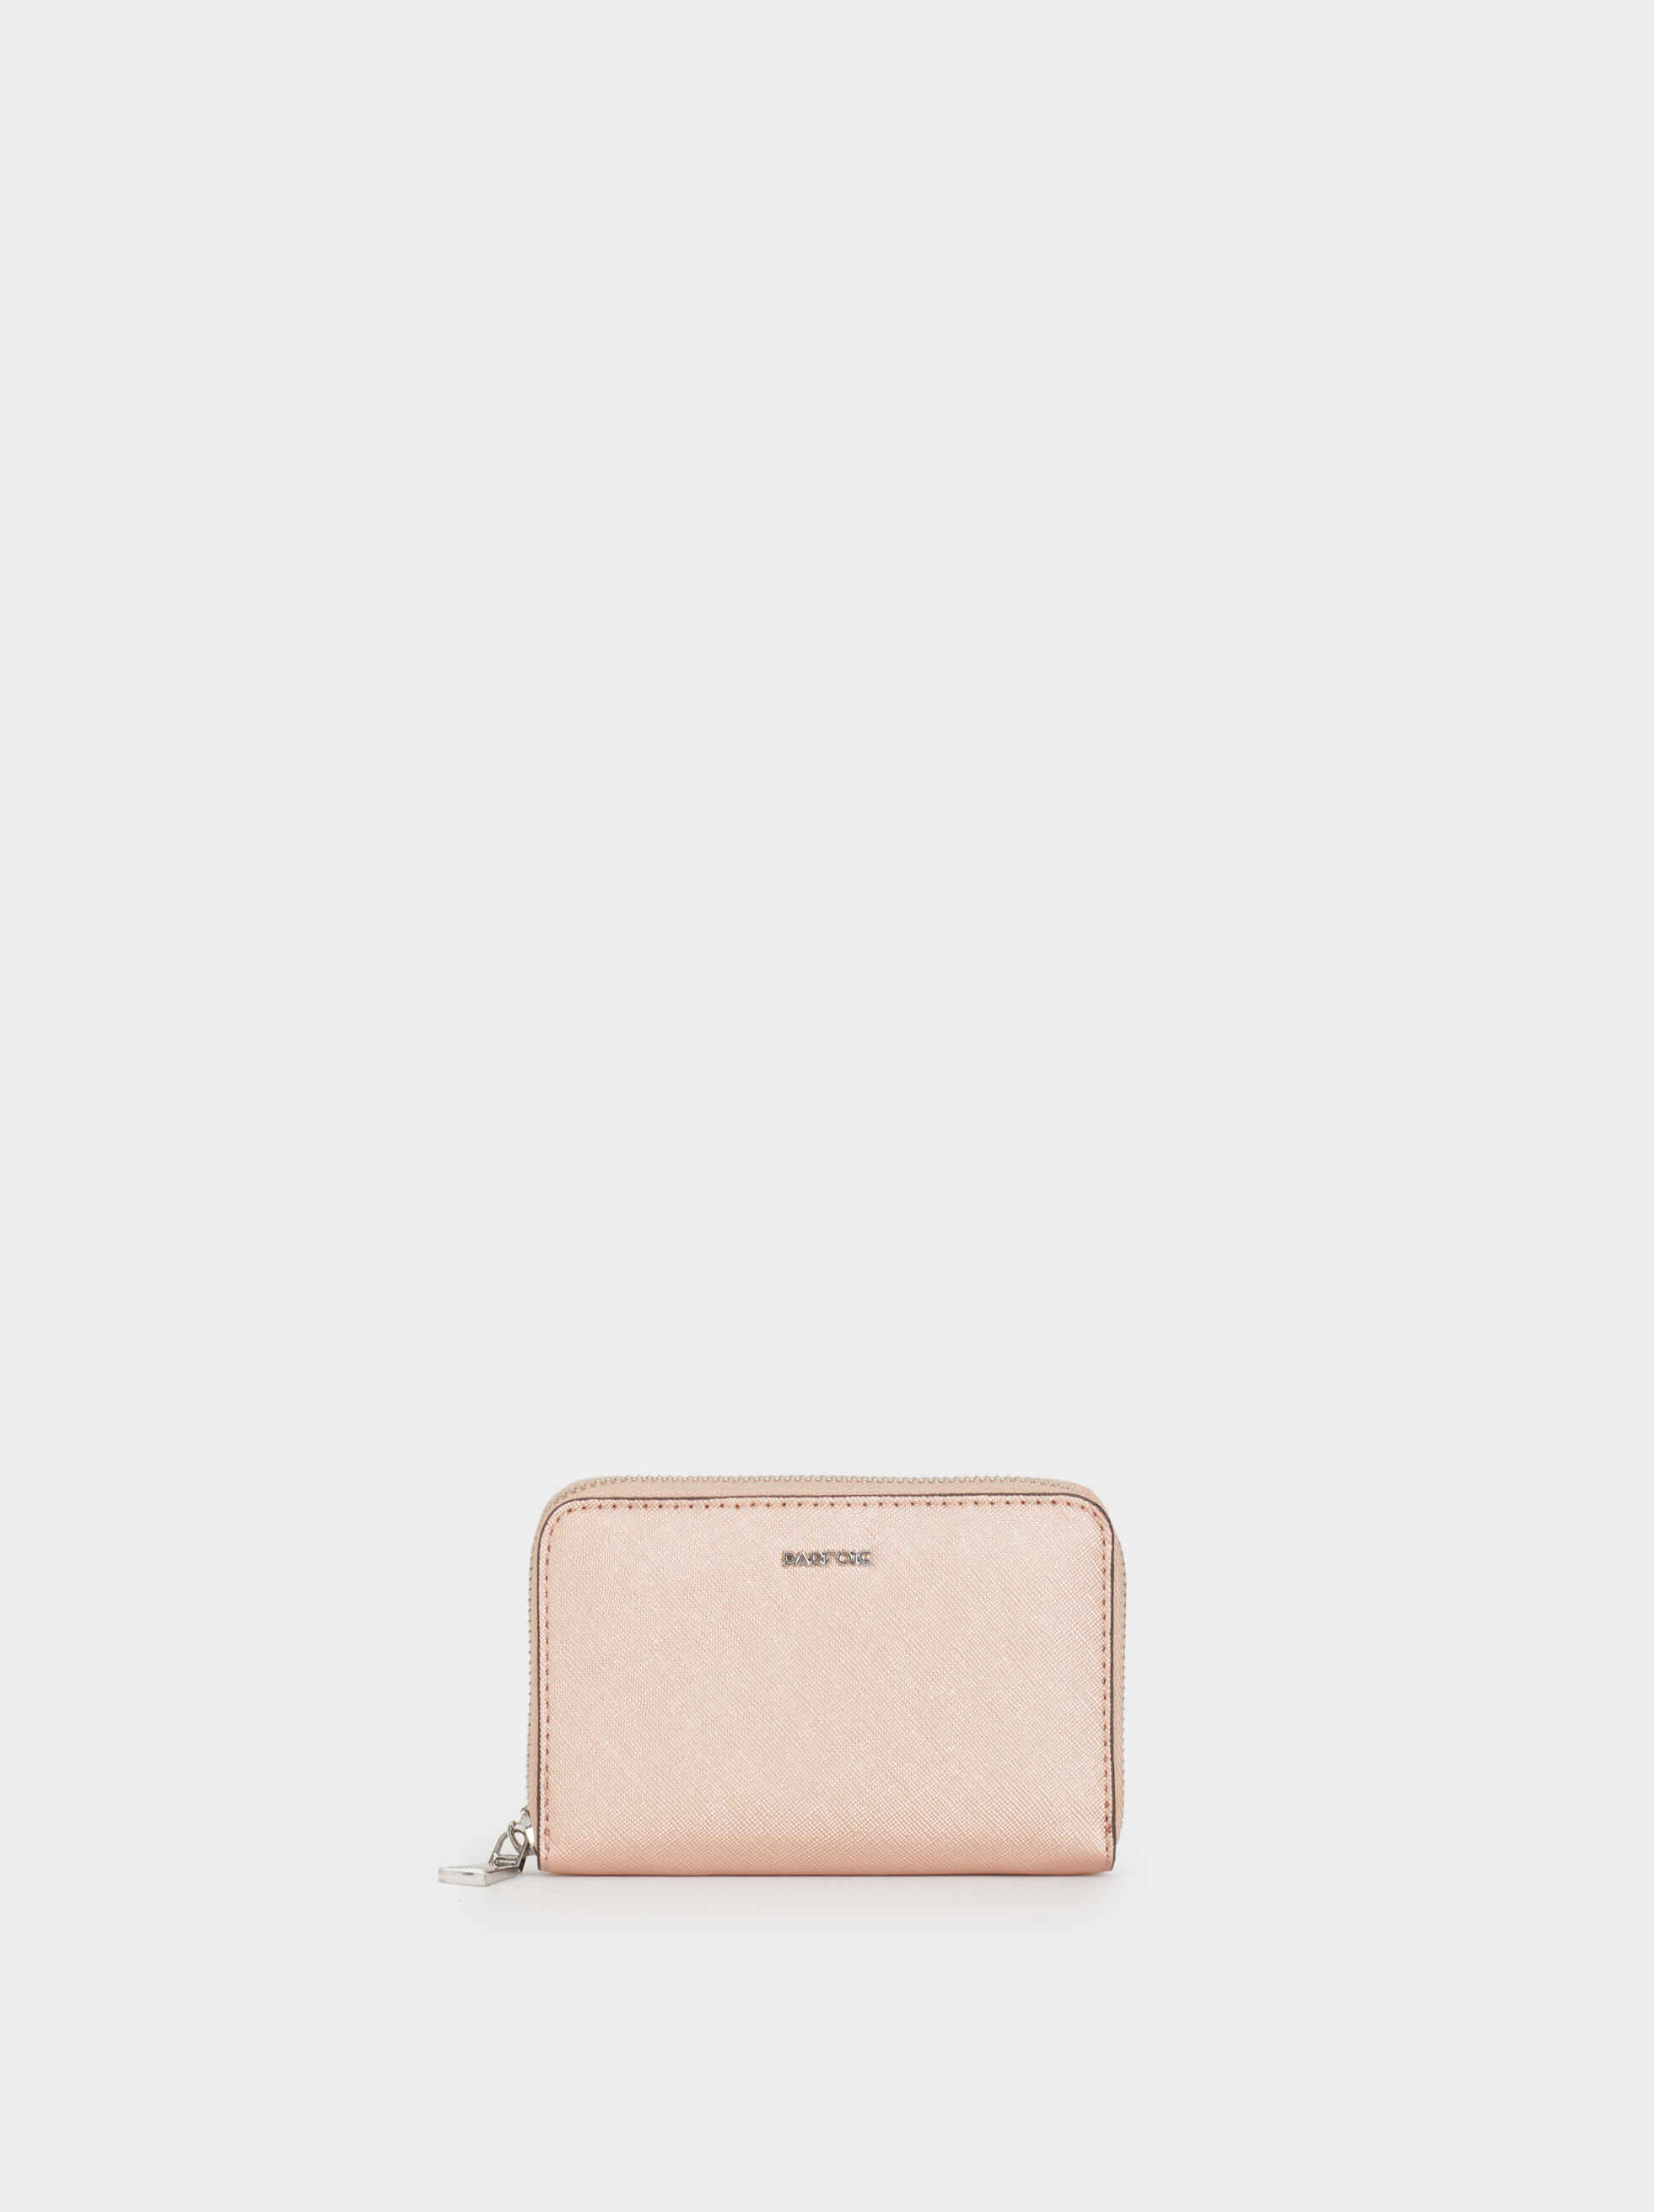 Small Plain Purse, Orange, hi-res